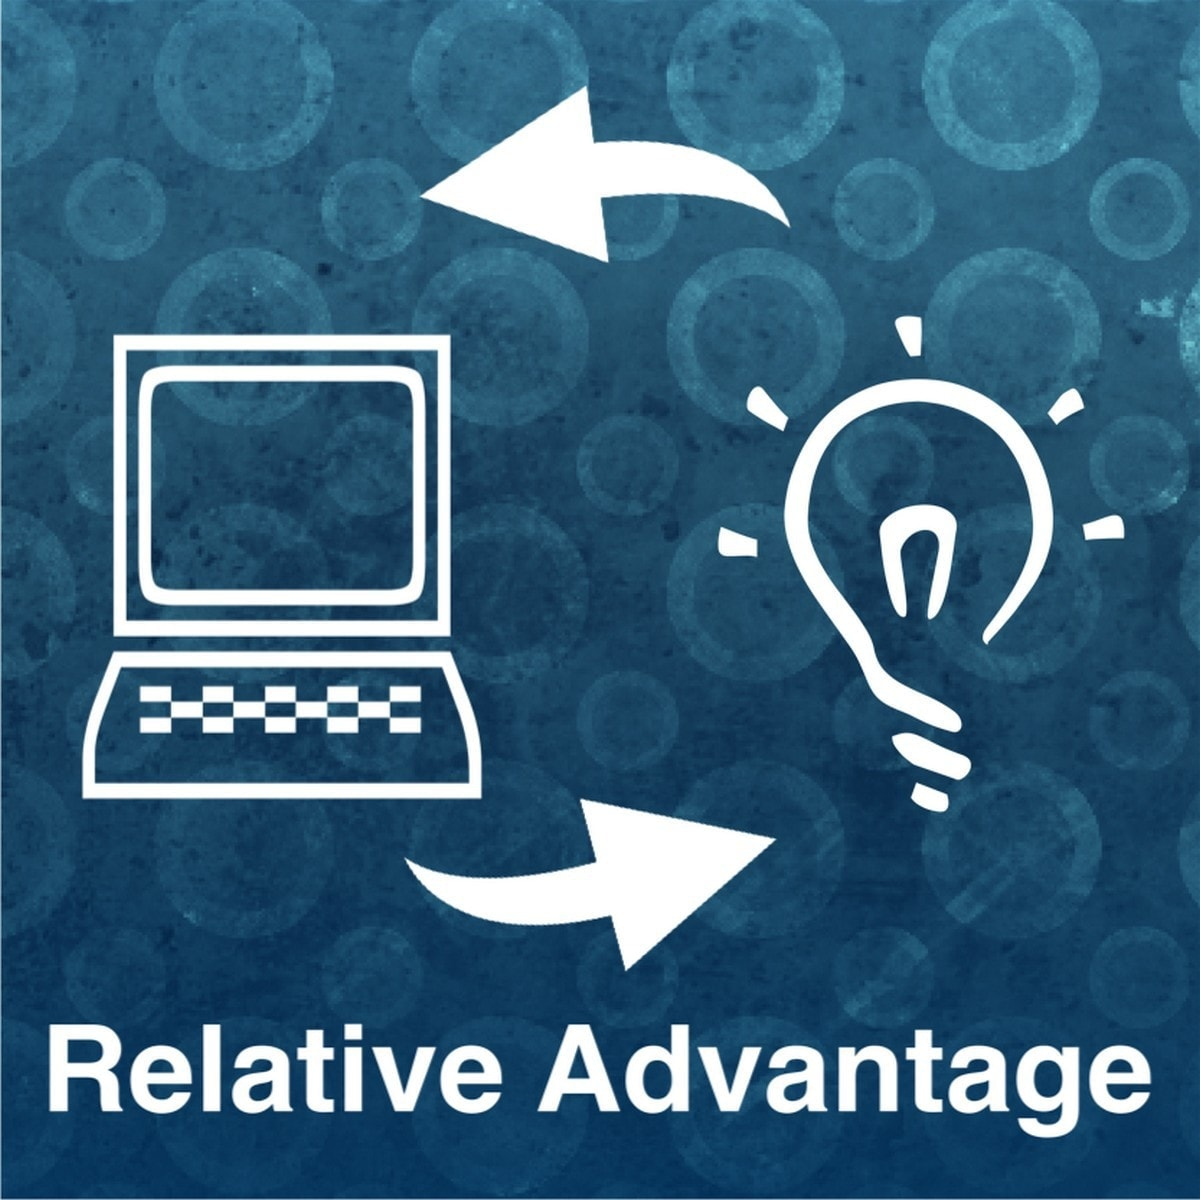 What is Relative Advantage? Concept, Advantage and Application